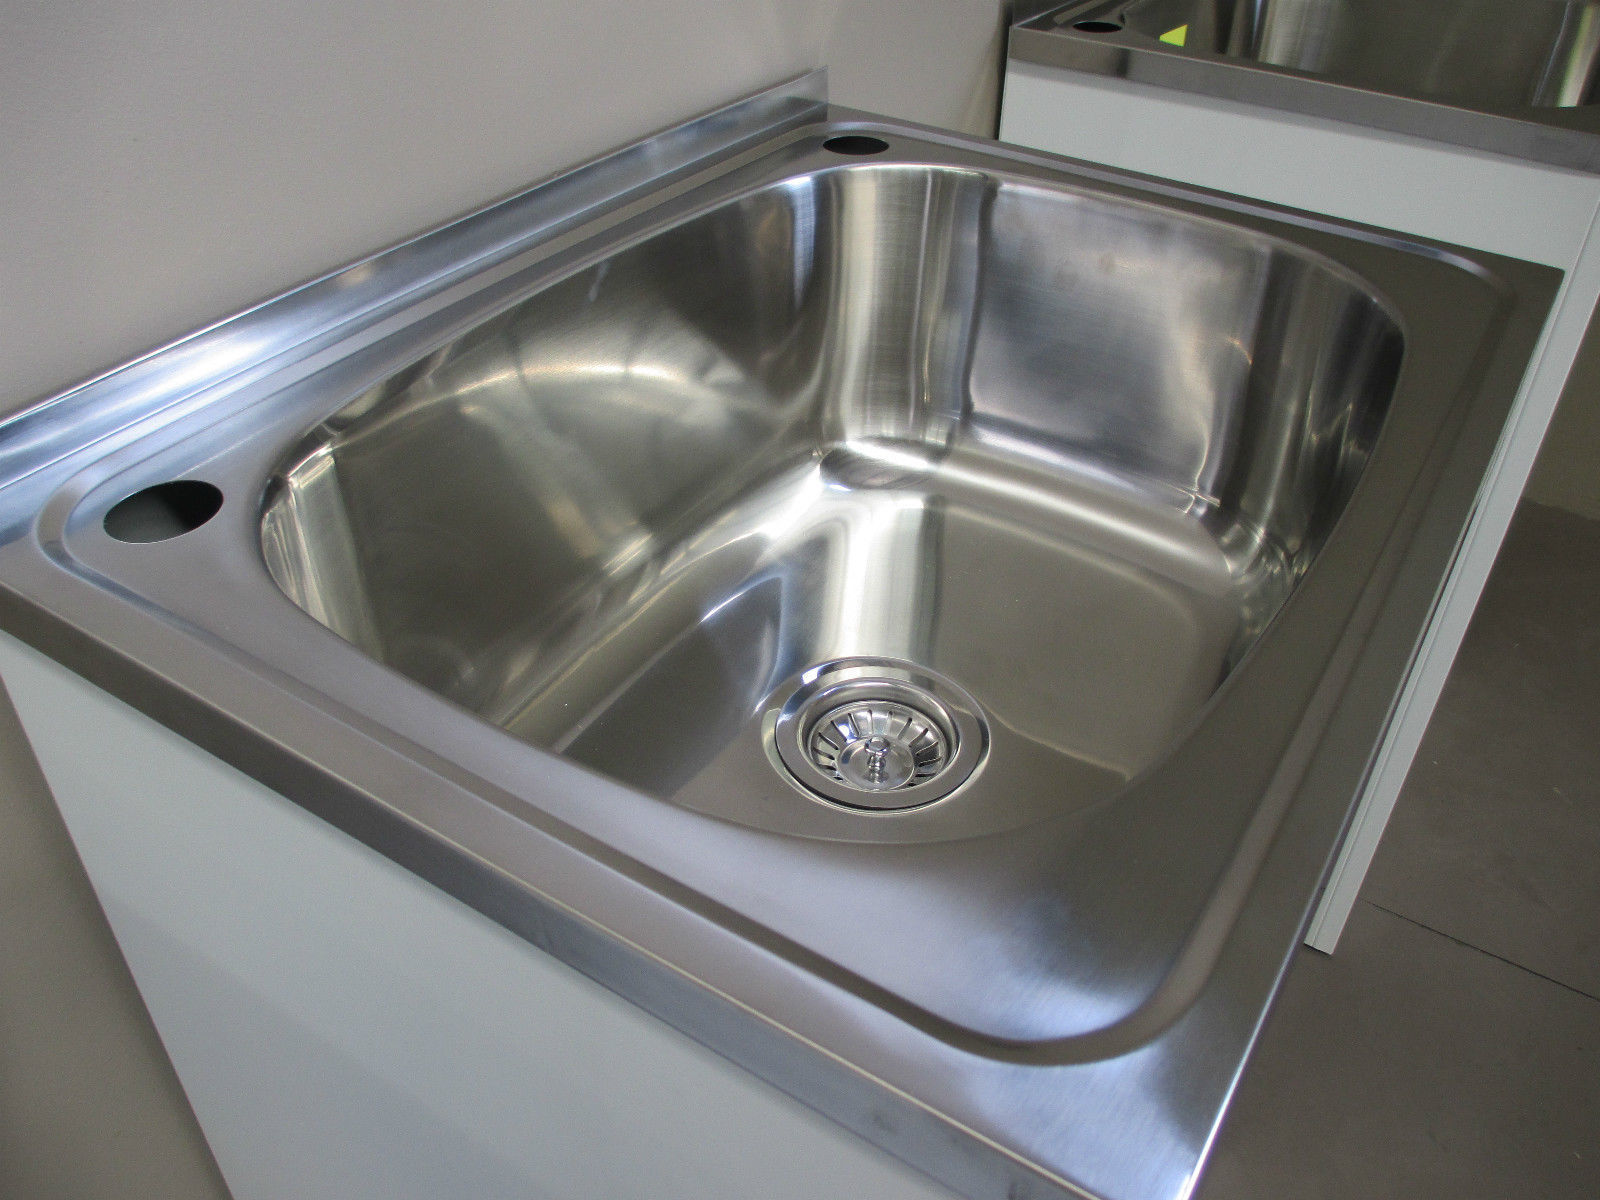 Laundry Tub 45L Stainless Steel Sink Cabinet Trough Adjustable Waste Bypass  Kit